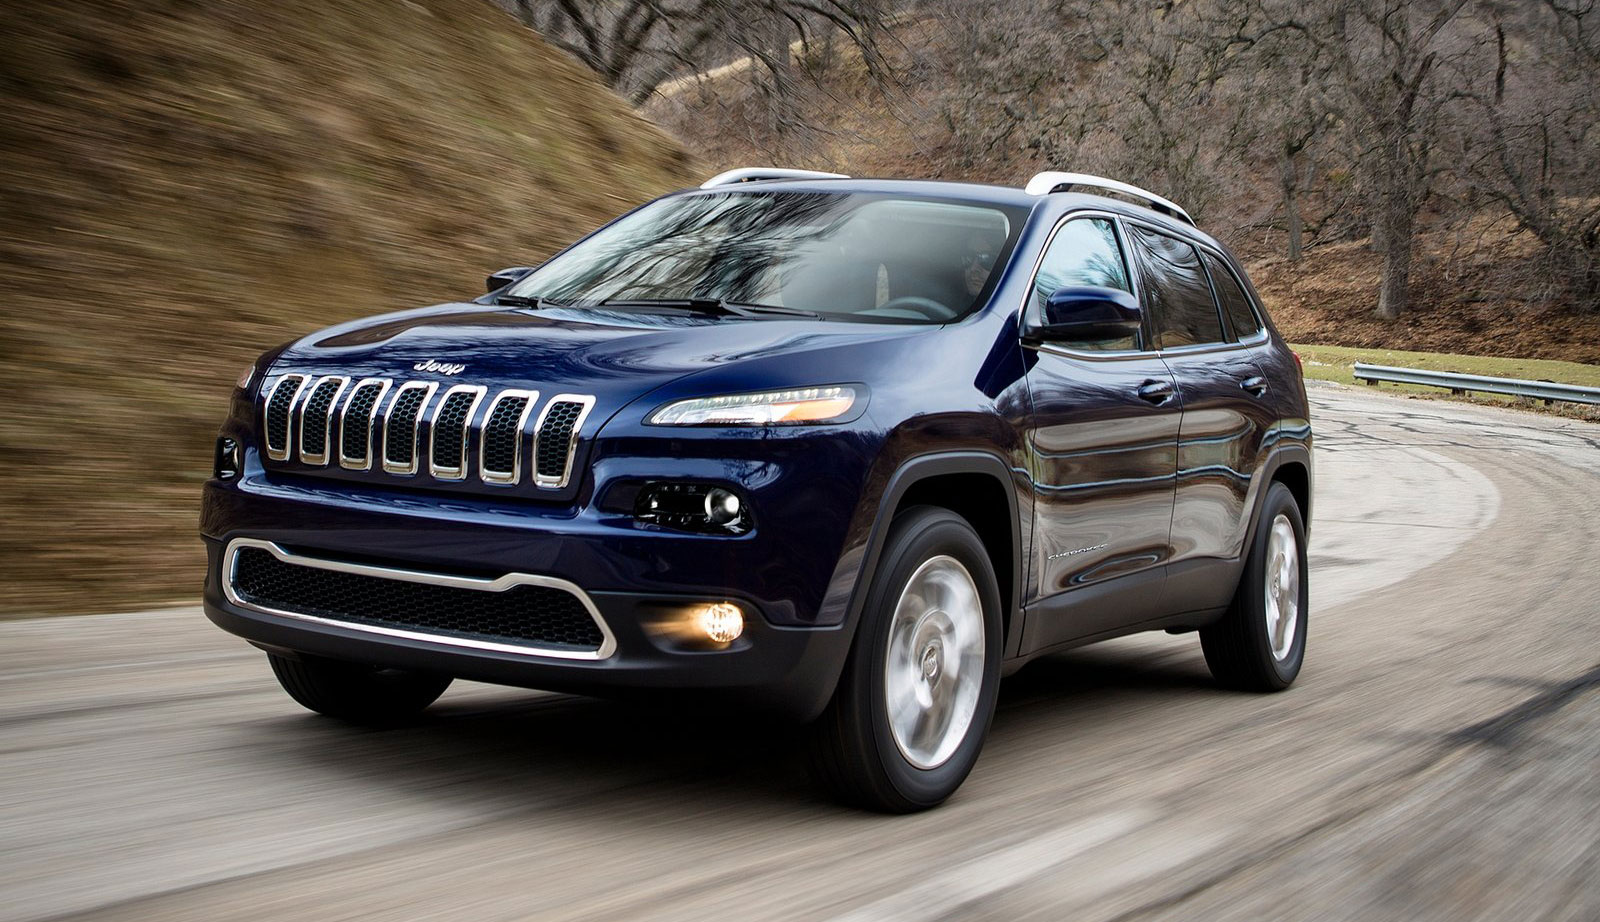 Wonderful 2014 Jeep Cherokee Problems TITLE: 2014 Jeep Cherokee Problems